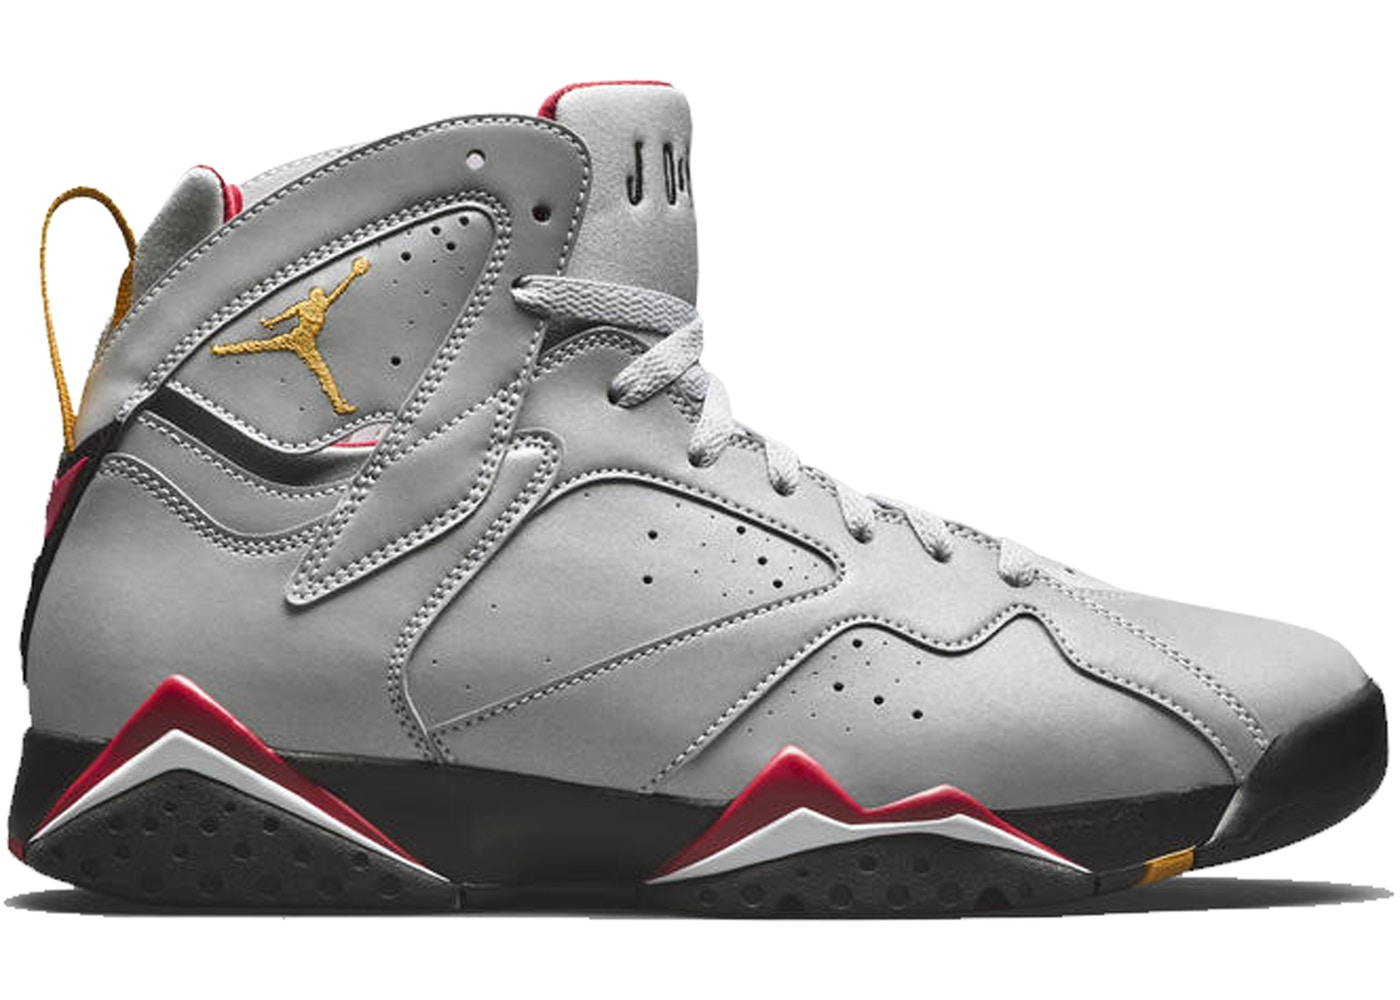 in stock 0bb9e 5a673 Jordan 7 Retro Reflections of a Champion - BV6281-006